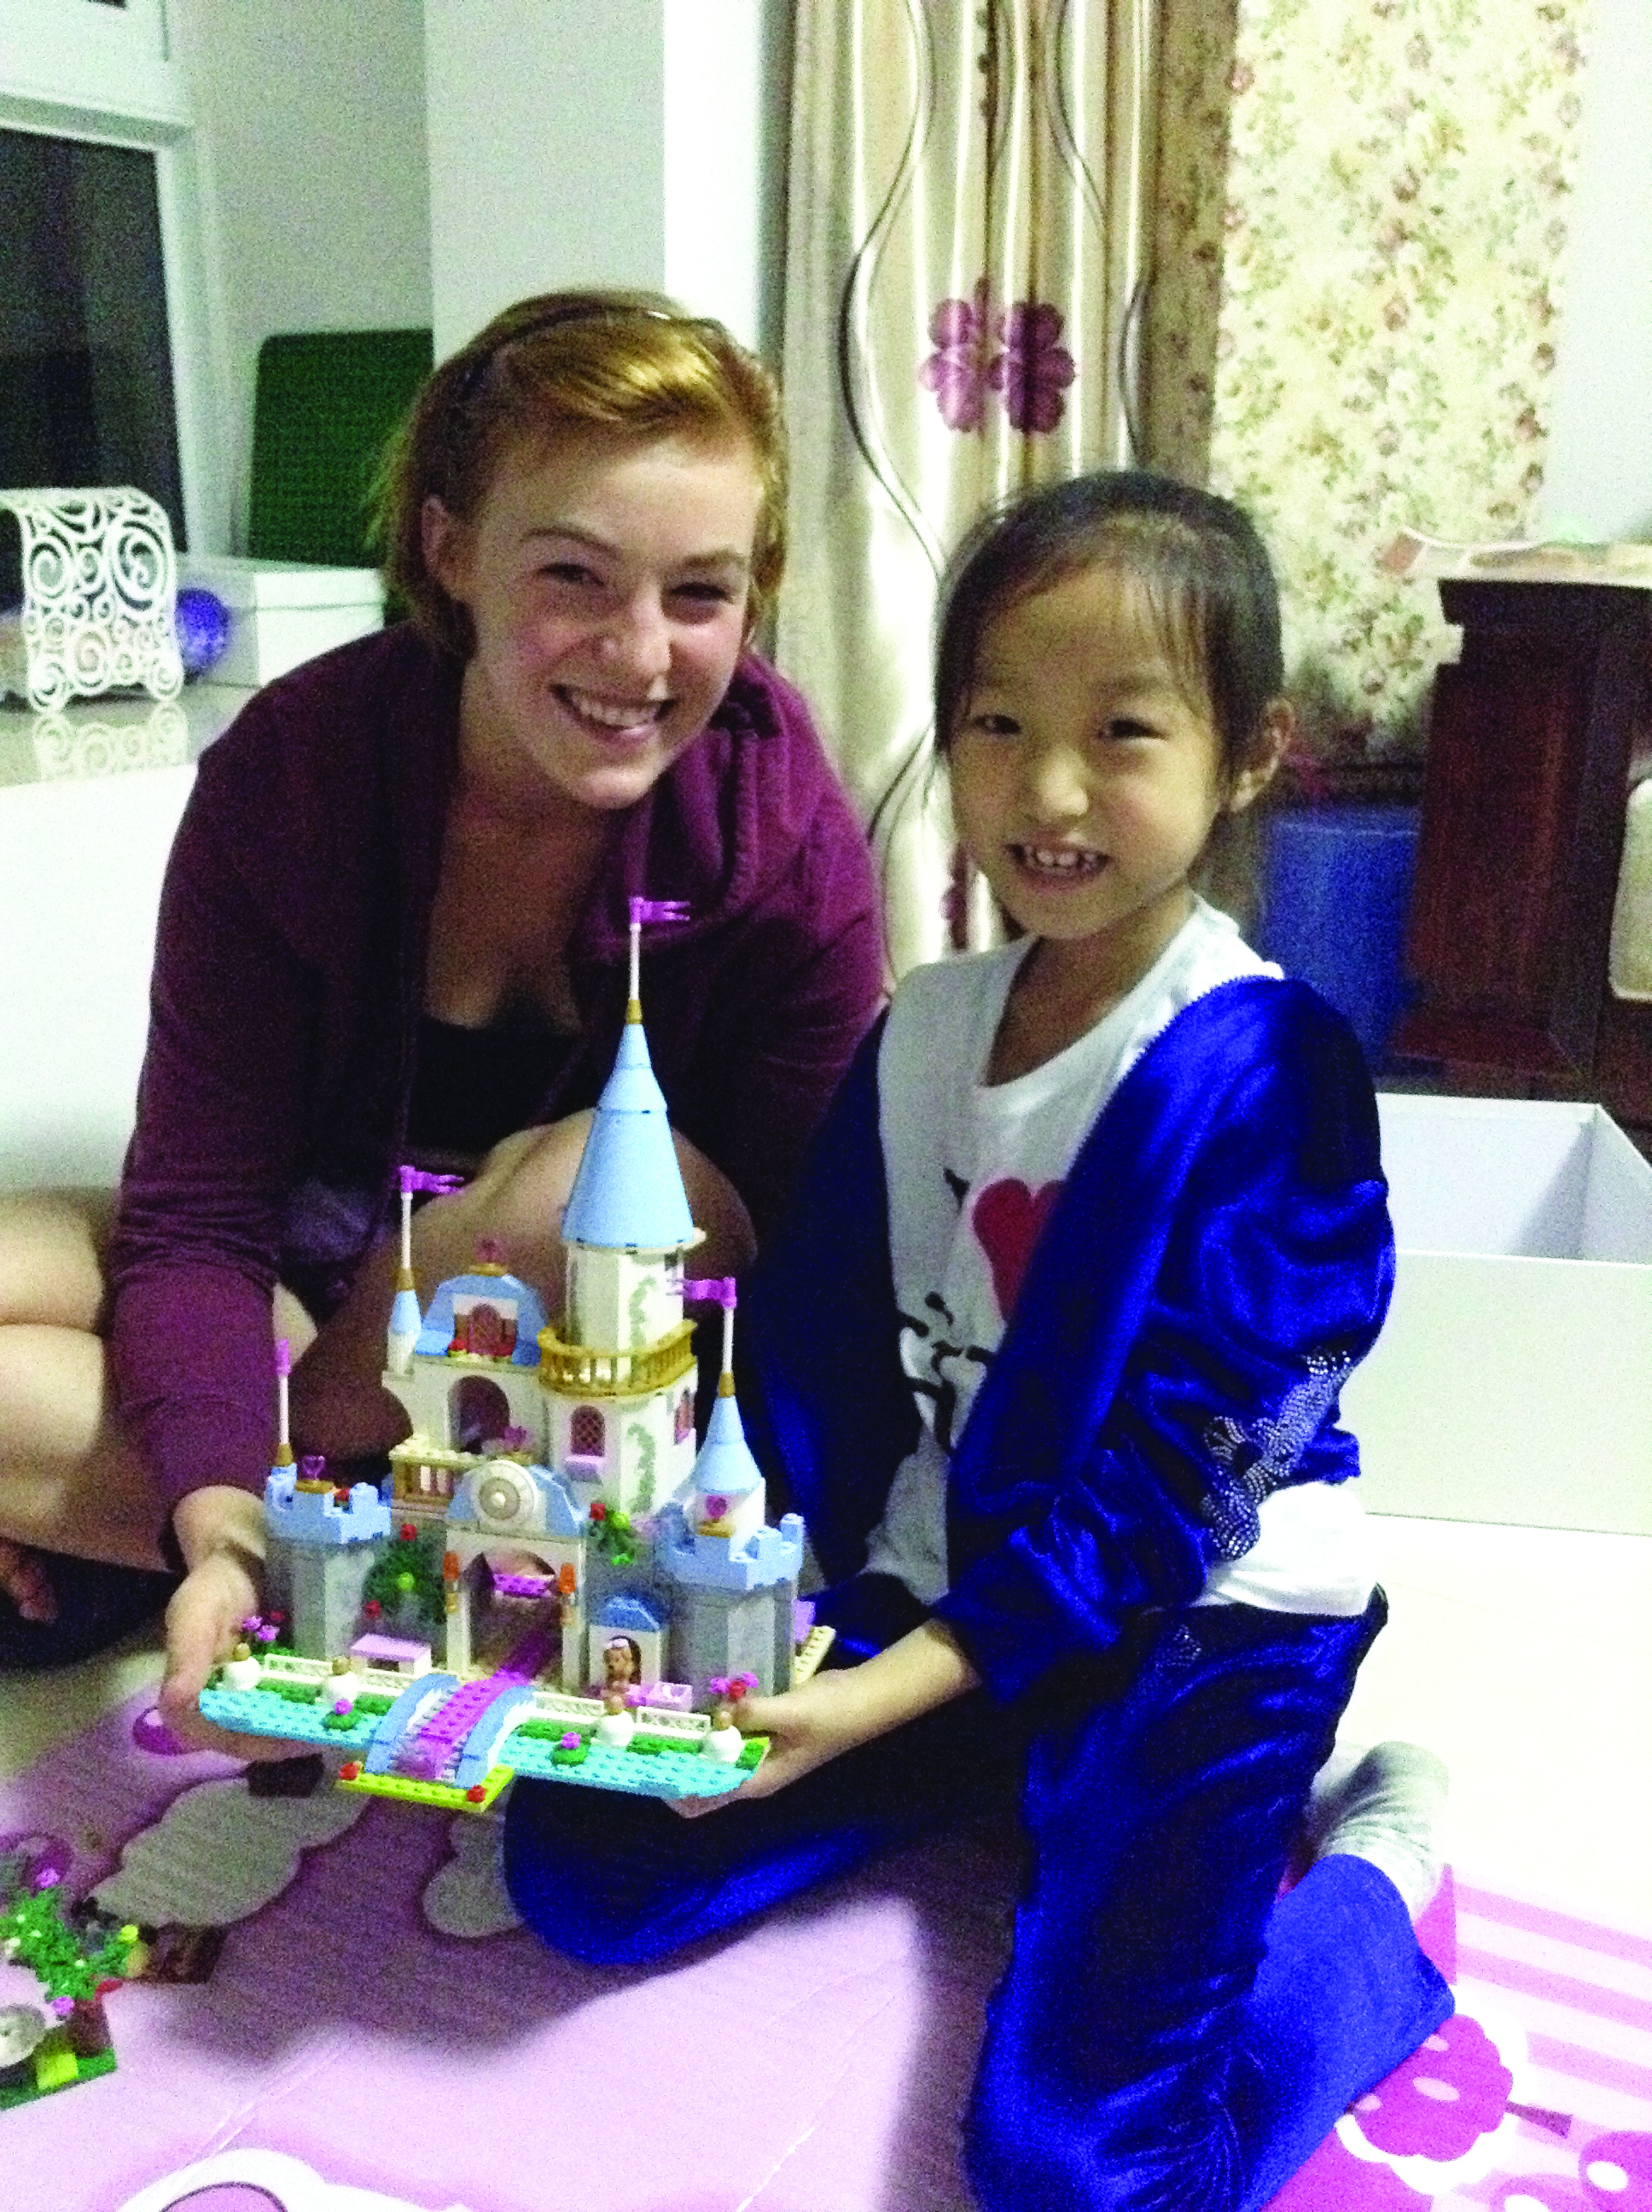 Ellen Conrad and her Chinese host sister hold a toy castle and smile for the camera